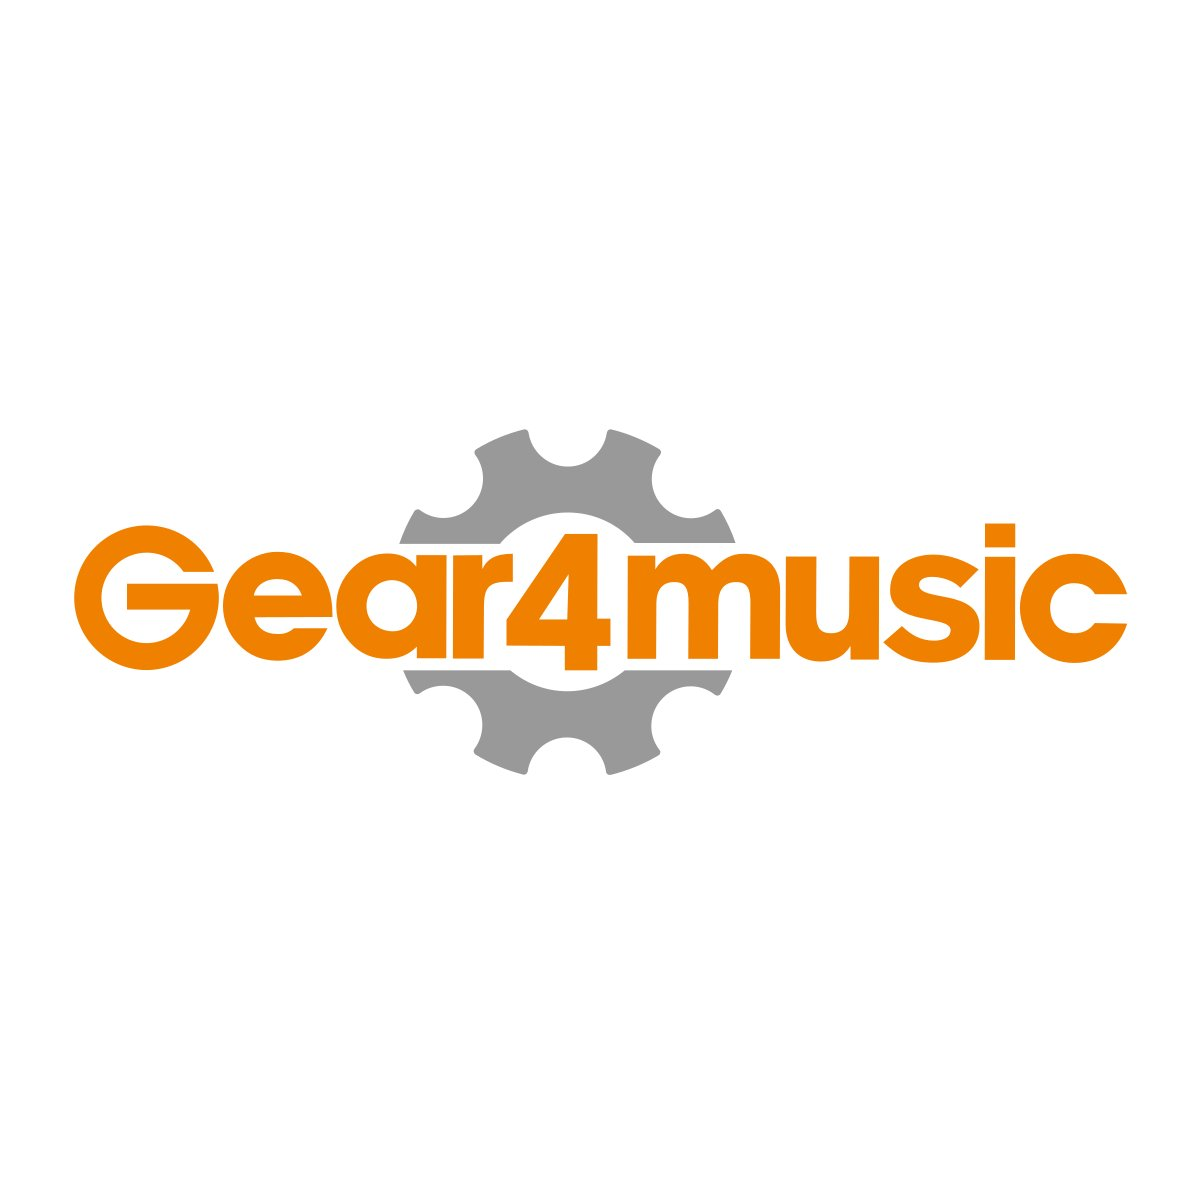 Carrilhão de Gear4music